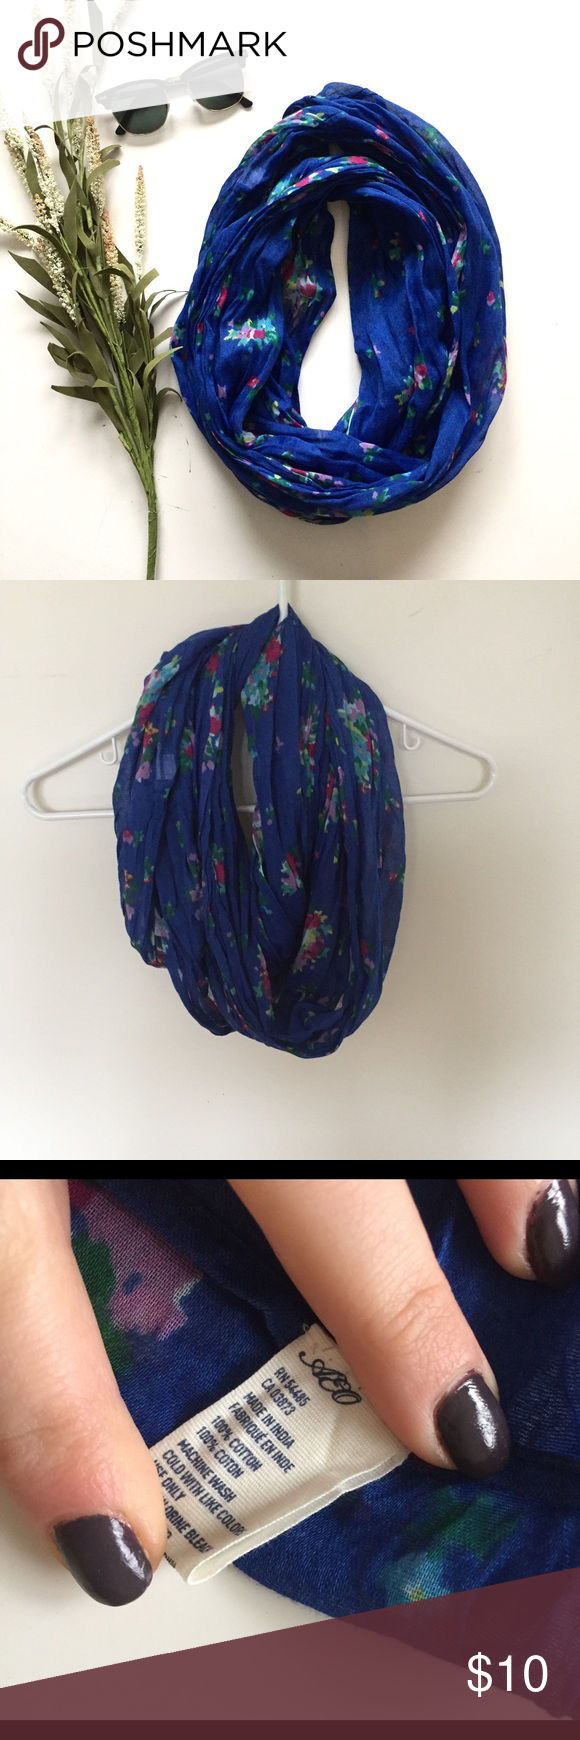 AE Blue floral infinity scarf Lightweight blue with flowers infinity scarf. No flaws. From American Eagle American Eagle Outfitters Accessories Scarves & Wraps